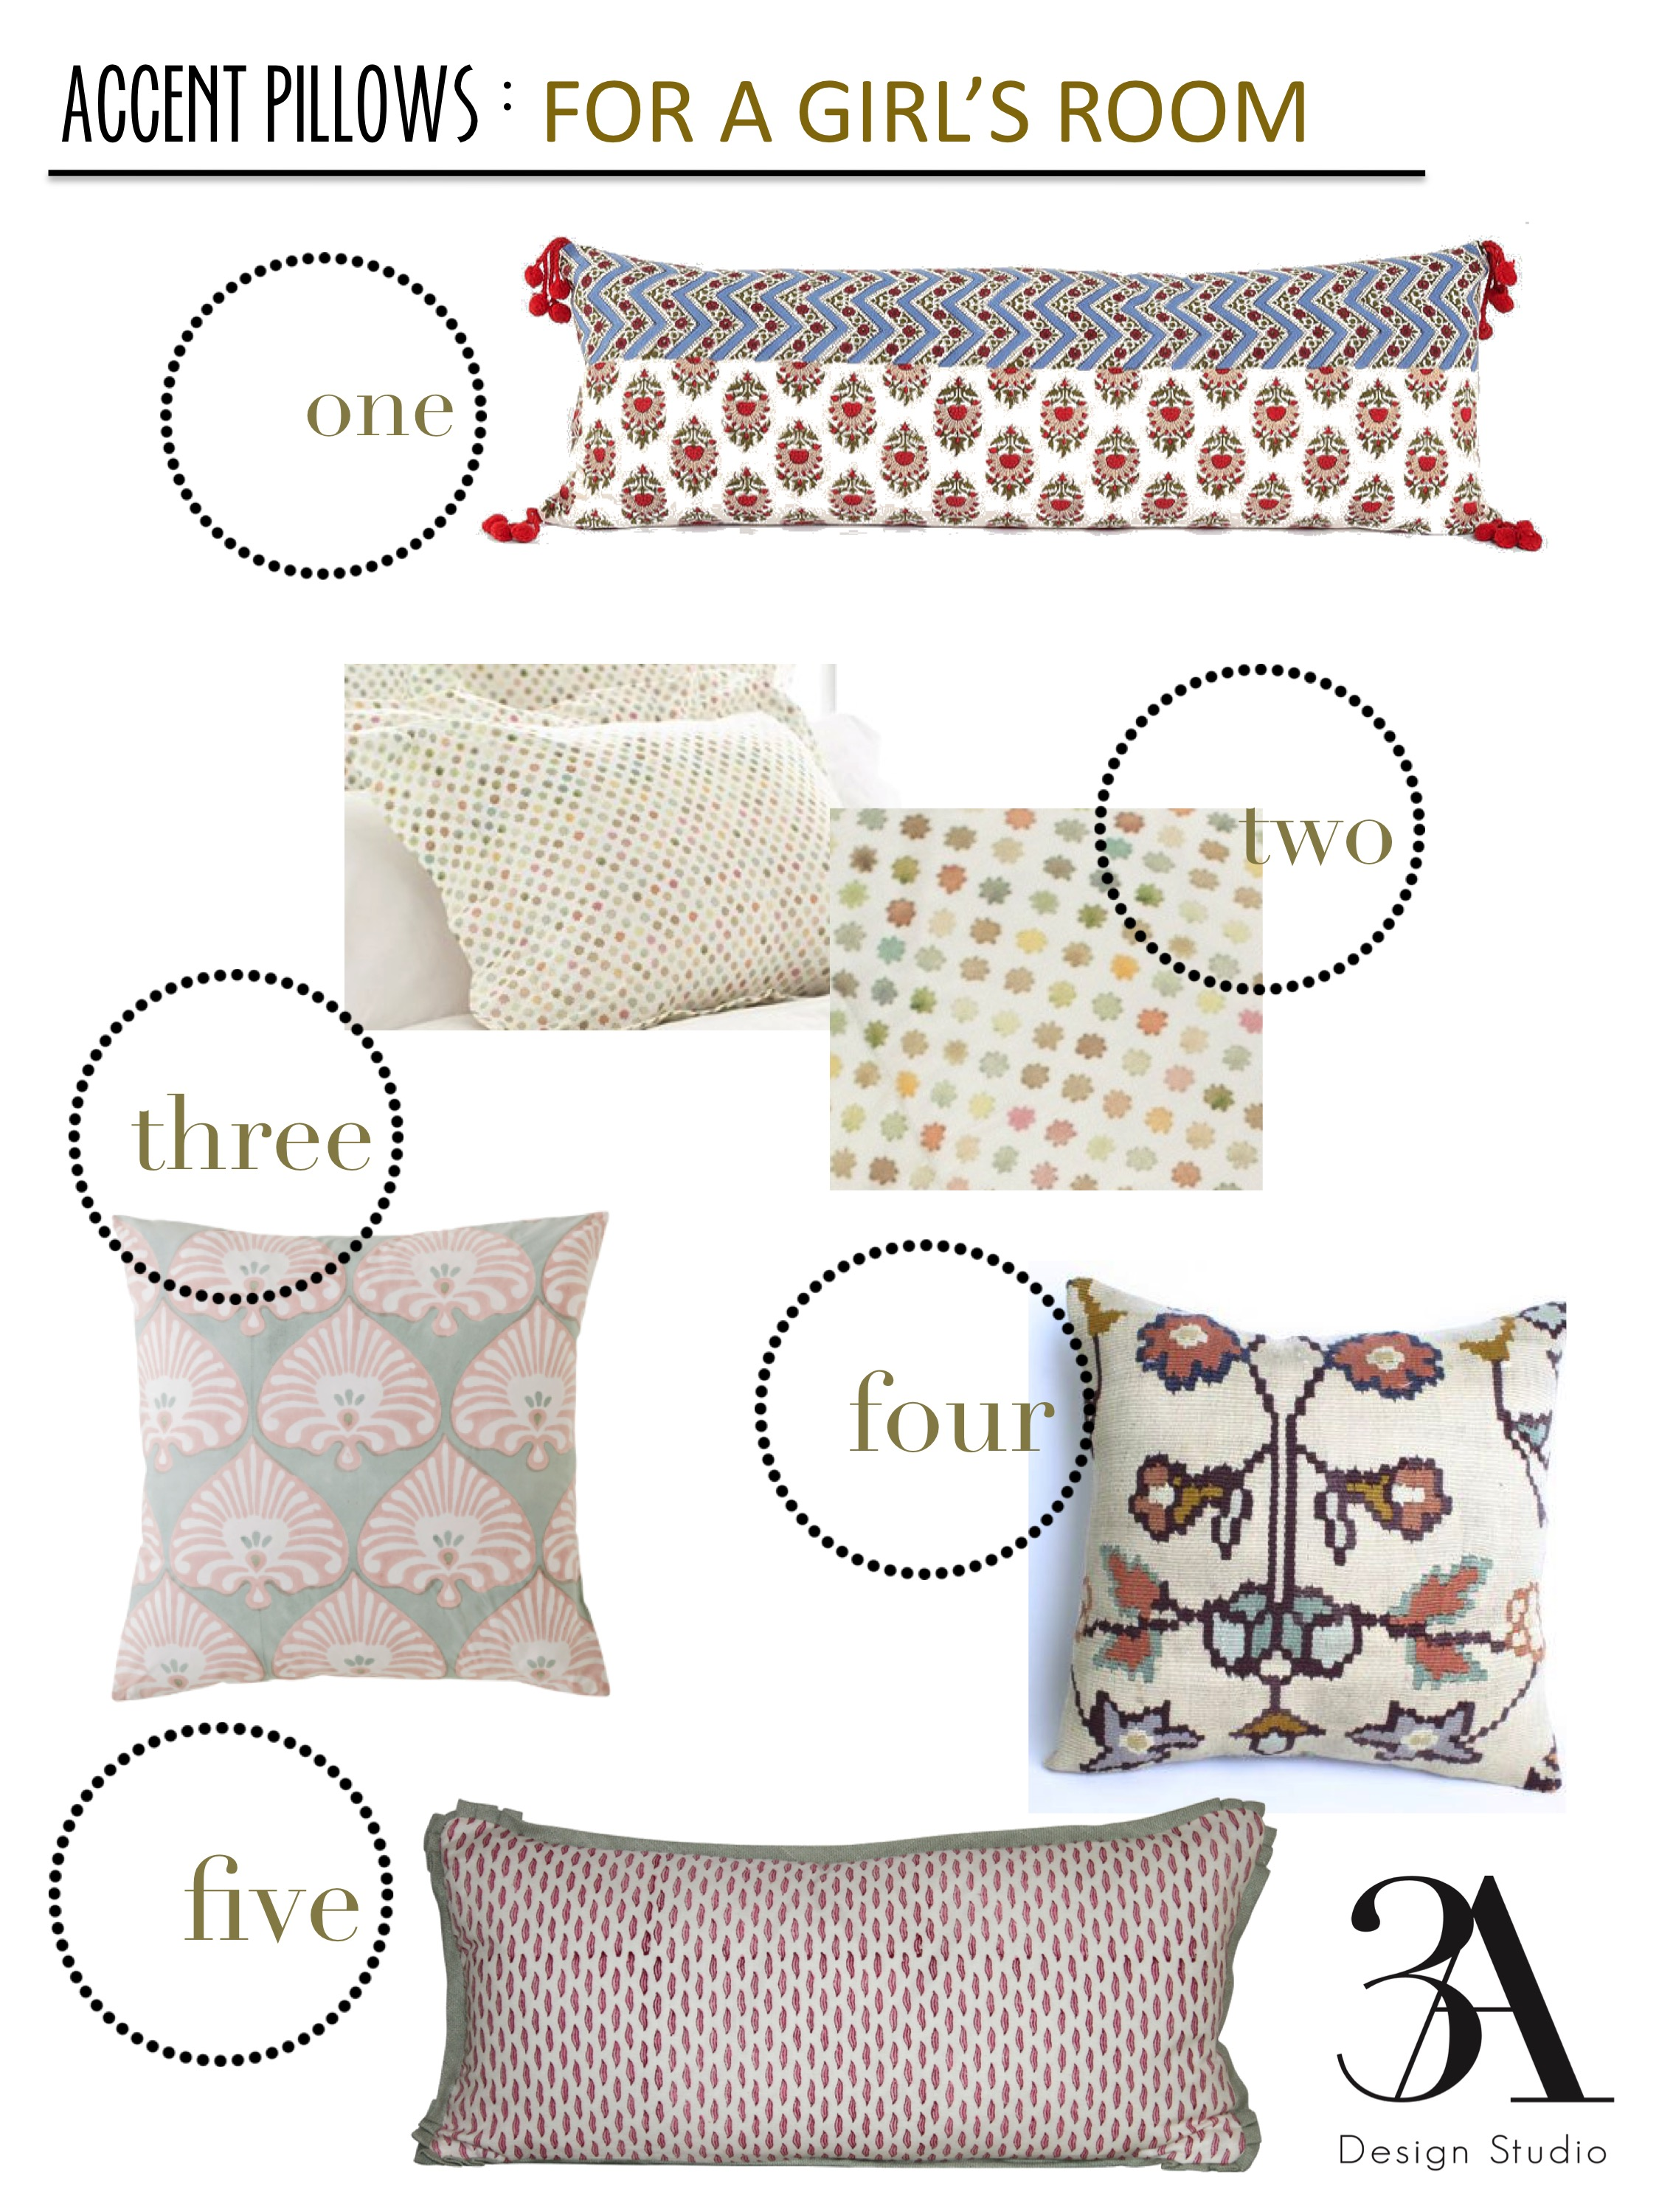 decorative pillows for a girls room